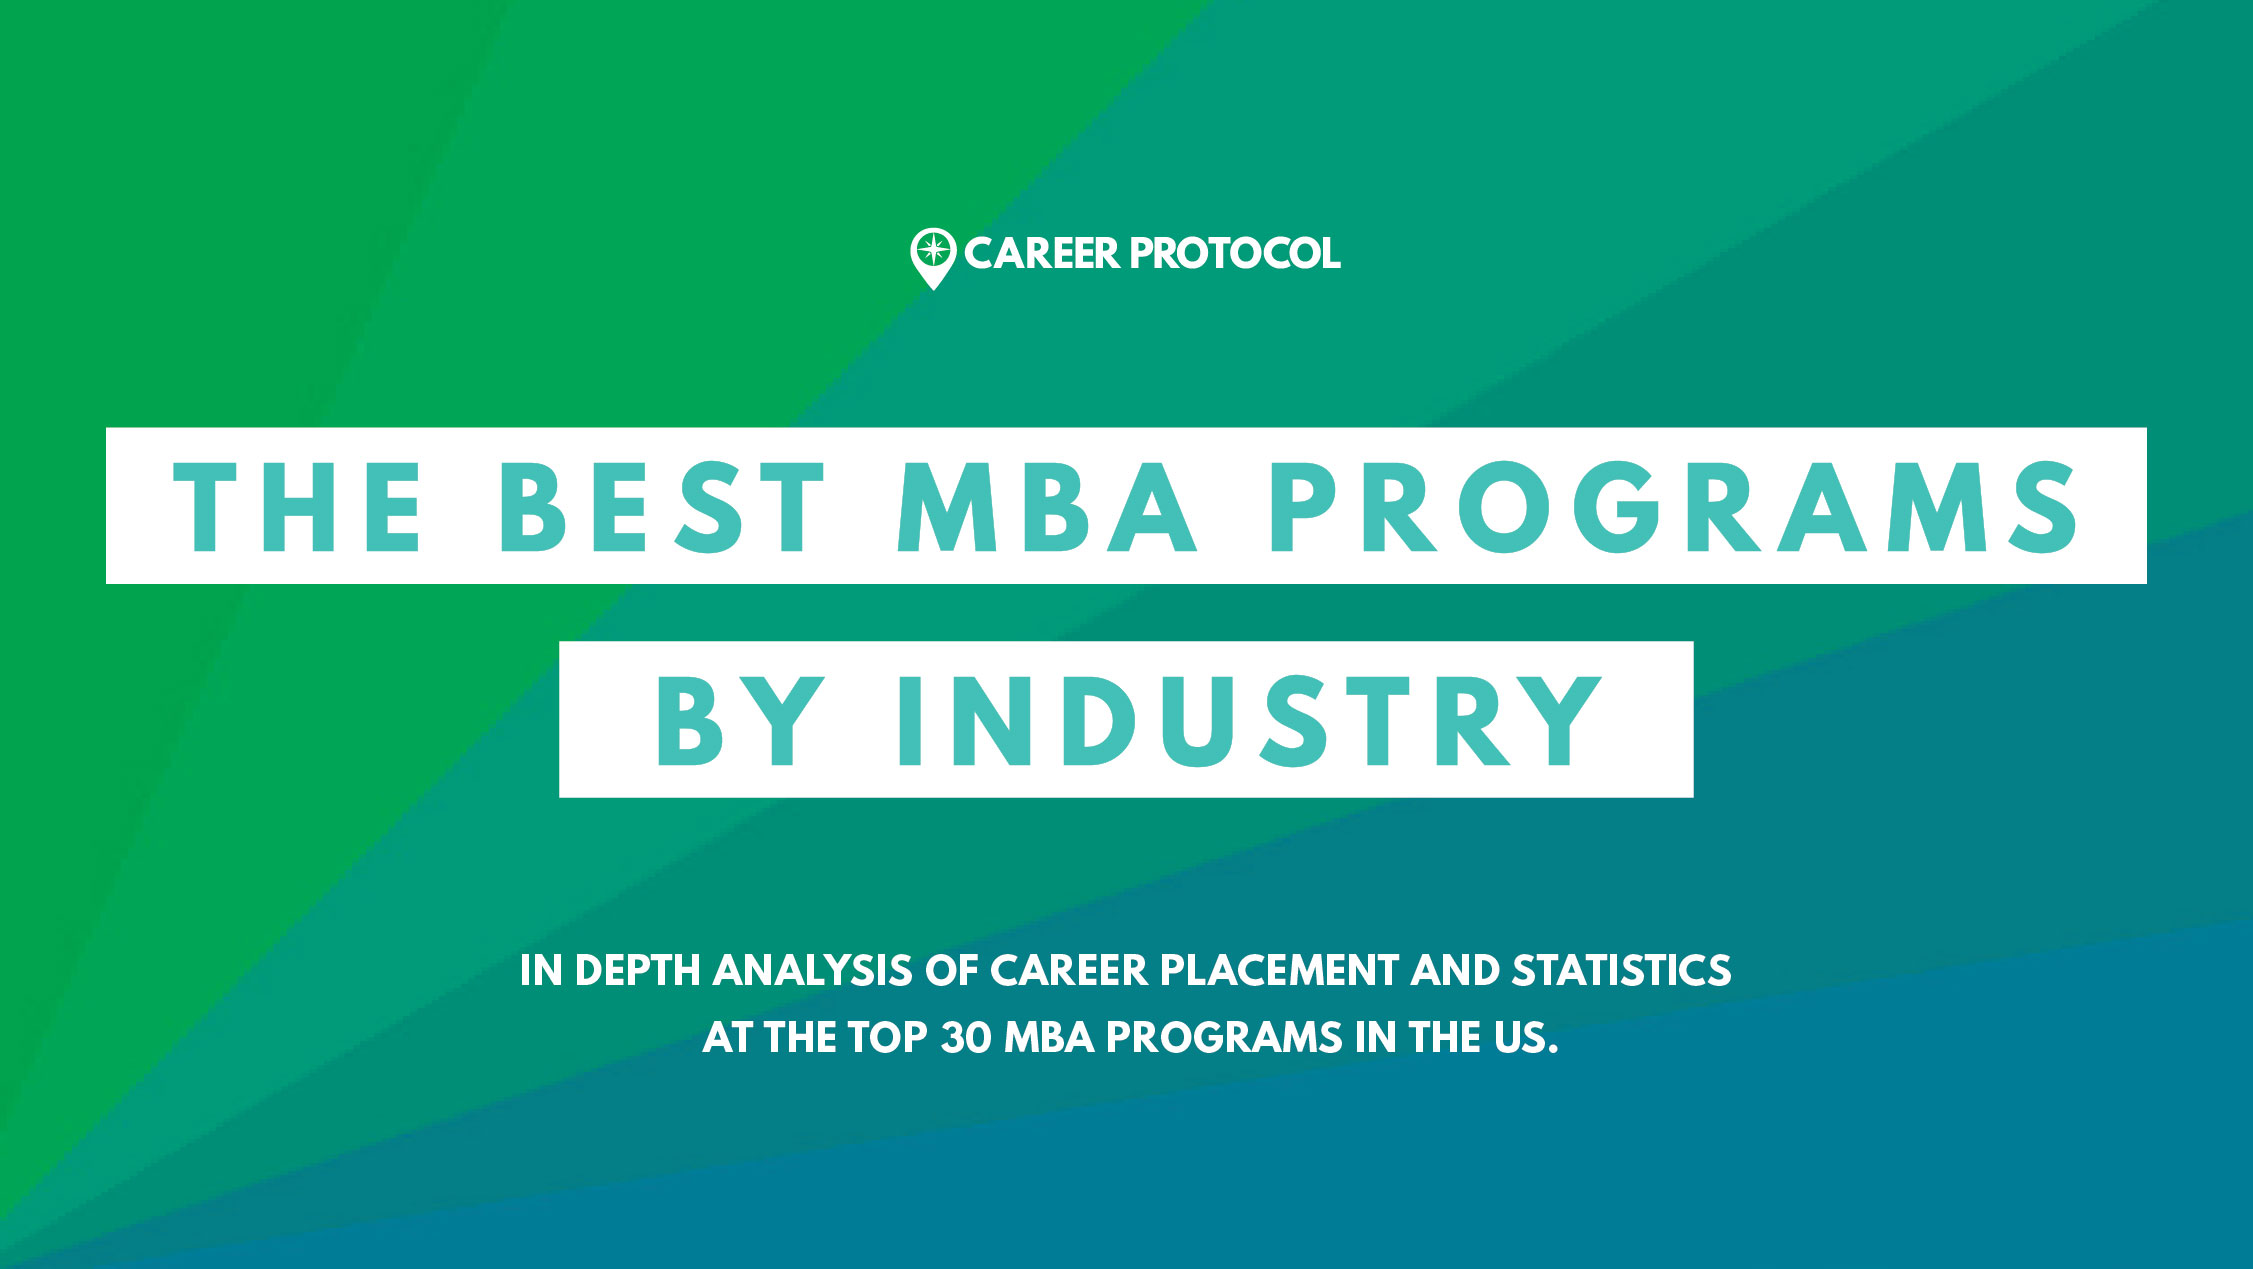 The Best MBA Programs by Industry